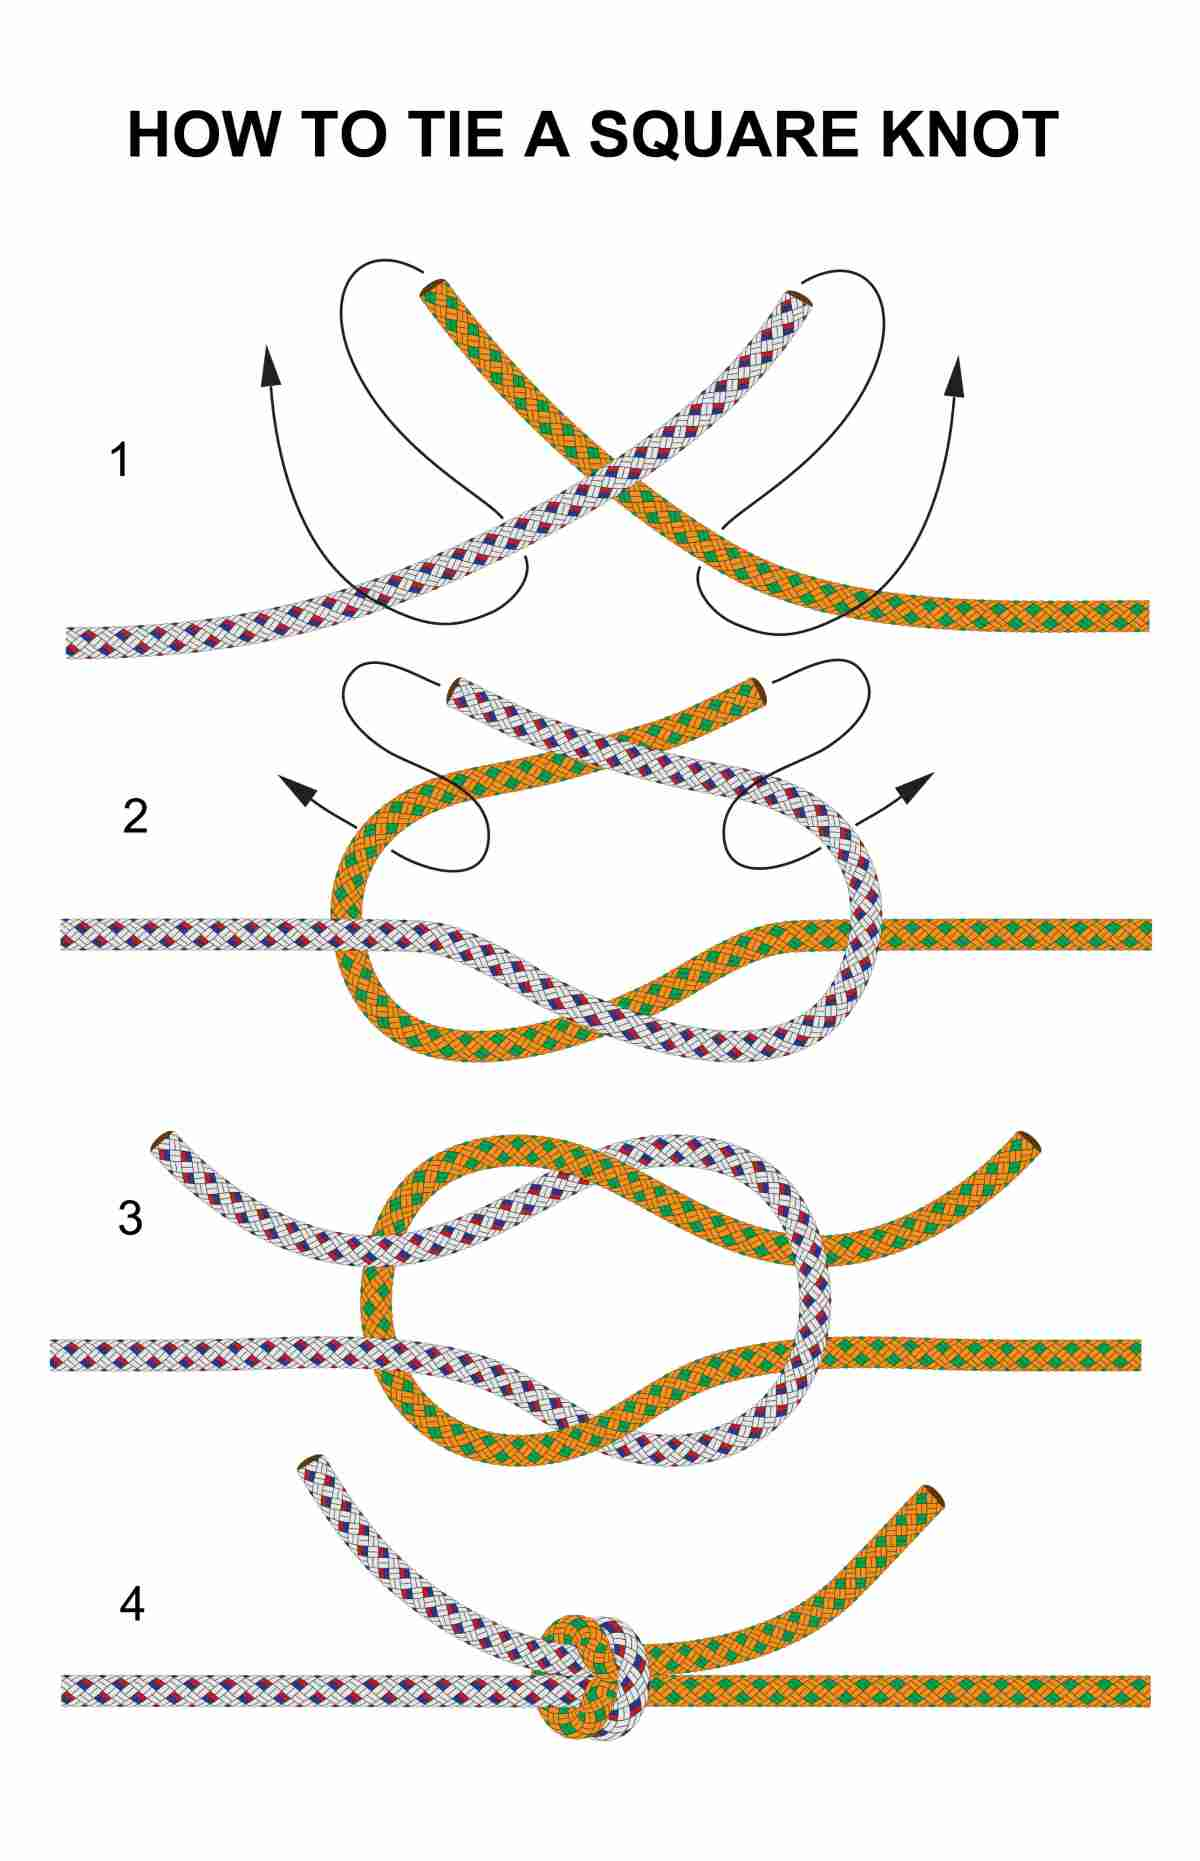 square knot illustration 1-4 | How To Tie A Square Knot | Step-By-Step Instructions | square knot | knots